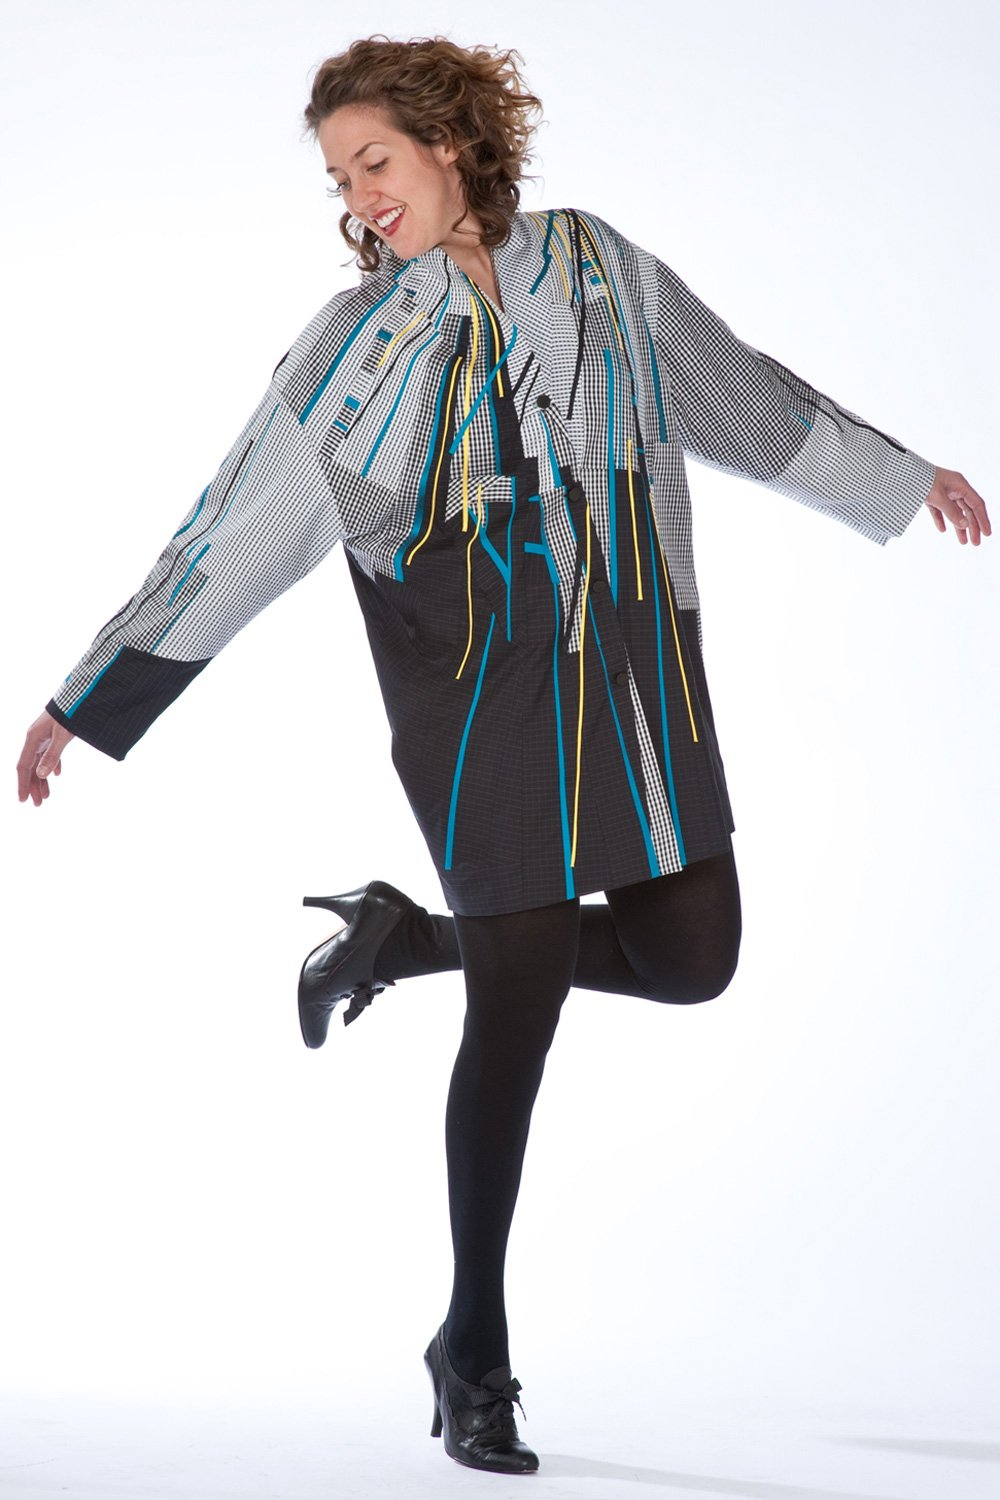 Black and Check, Pieced and hand appliquéd jacket from various silks | Ann Williamson